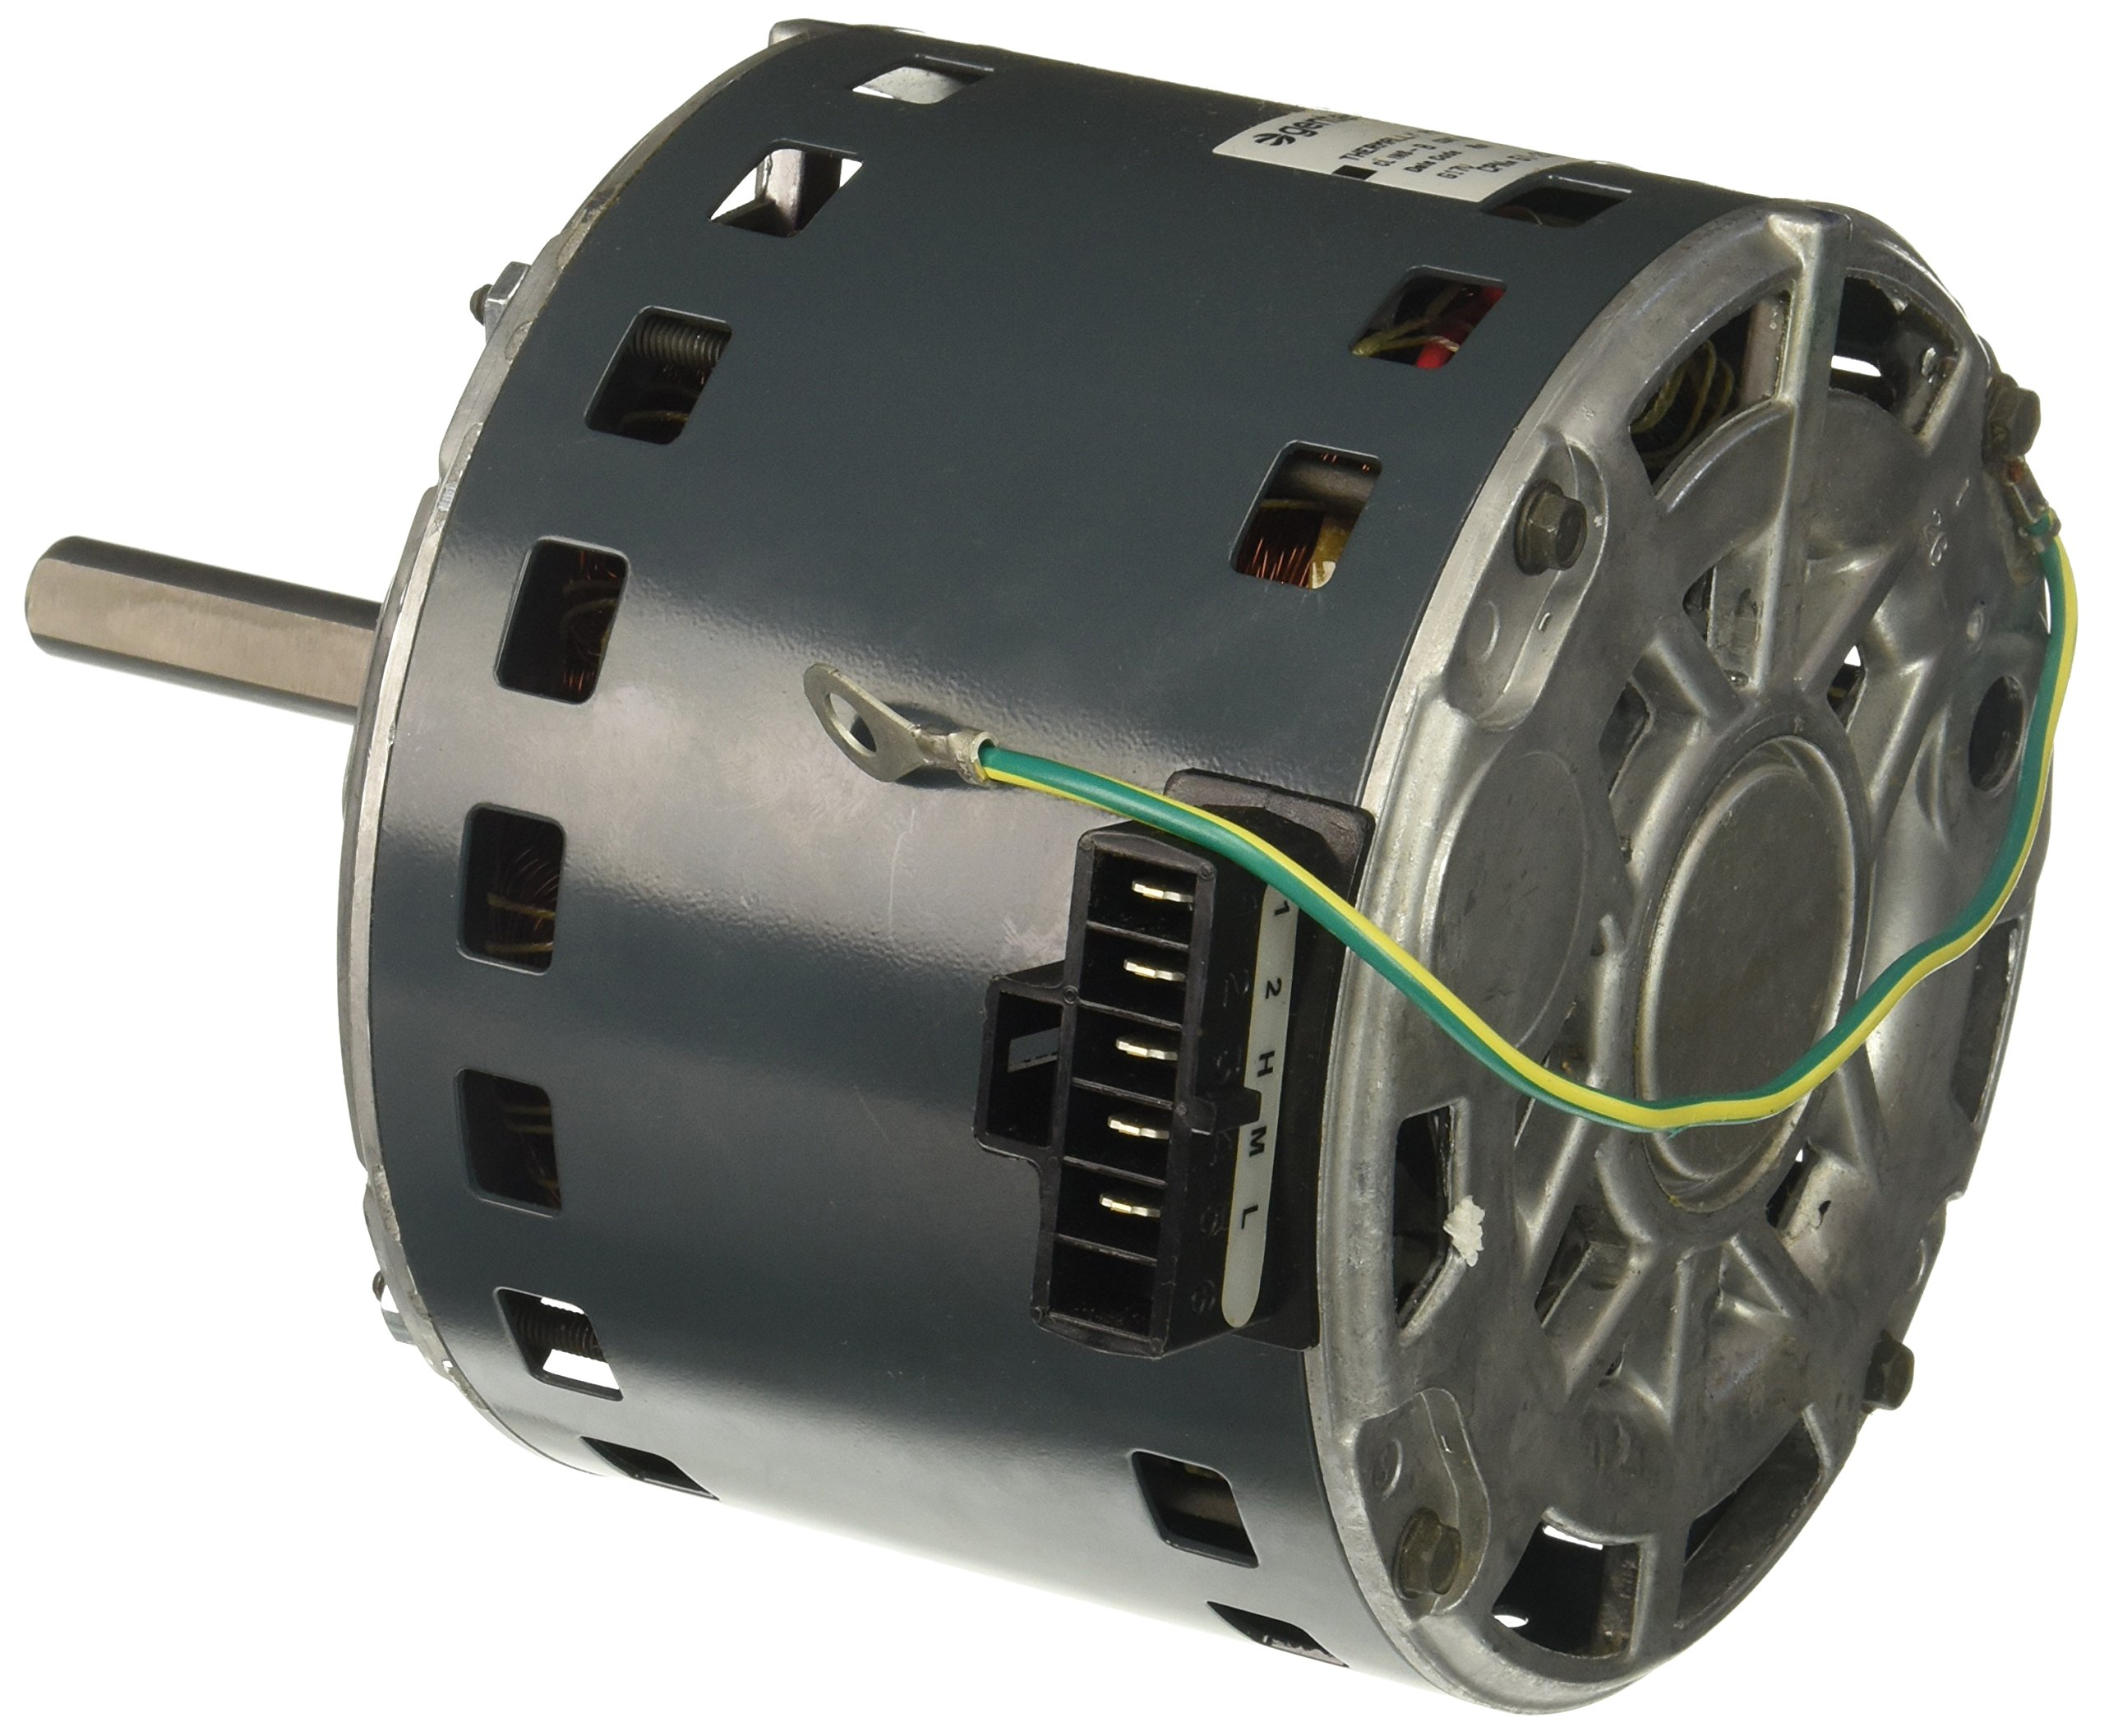 Protech 51-23609-04 1/2 hp 208-230/1/60 Blower Motor by Protech